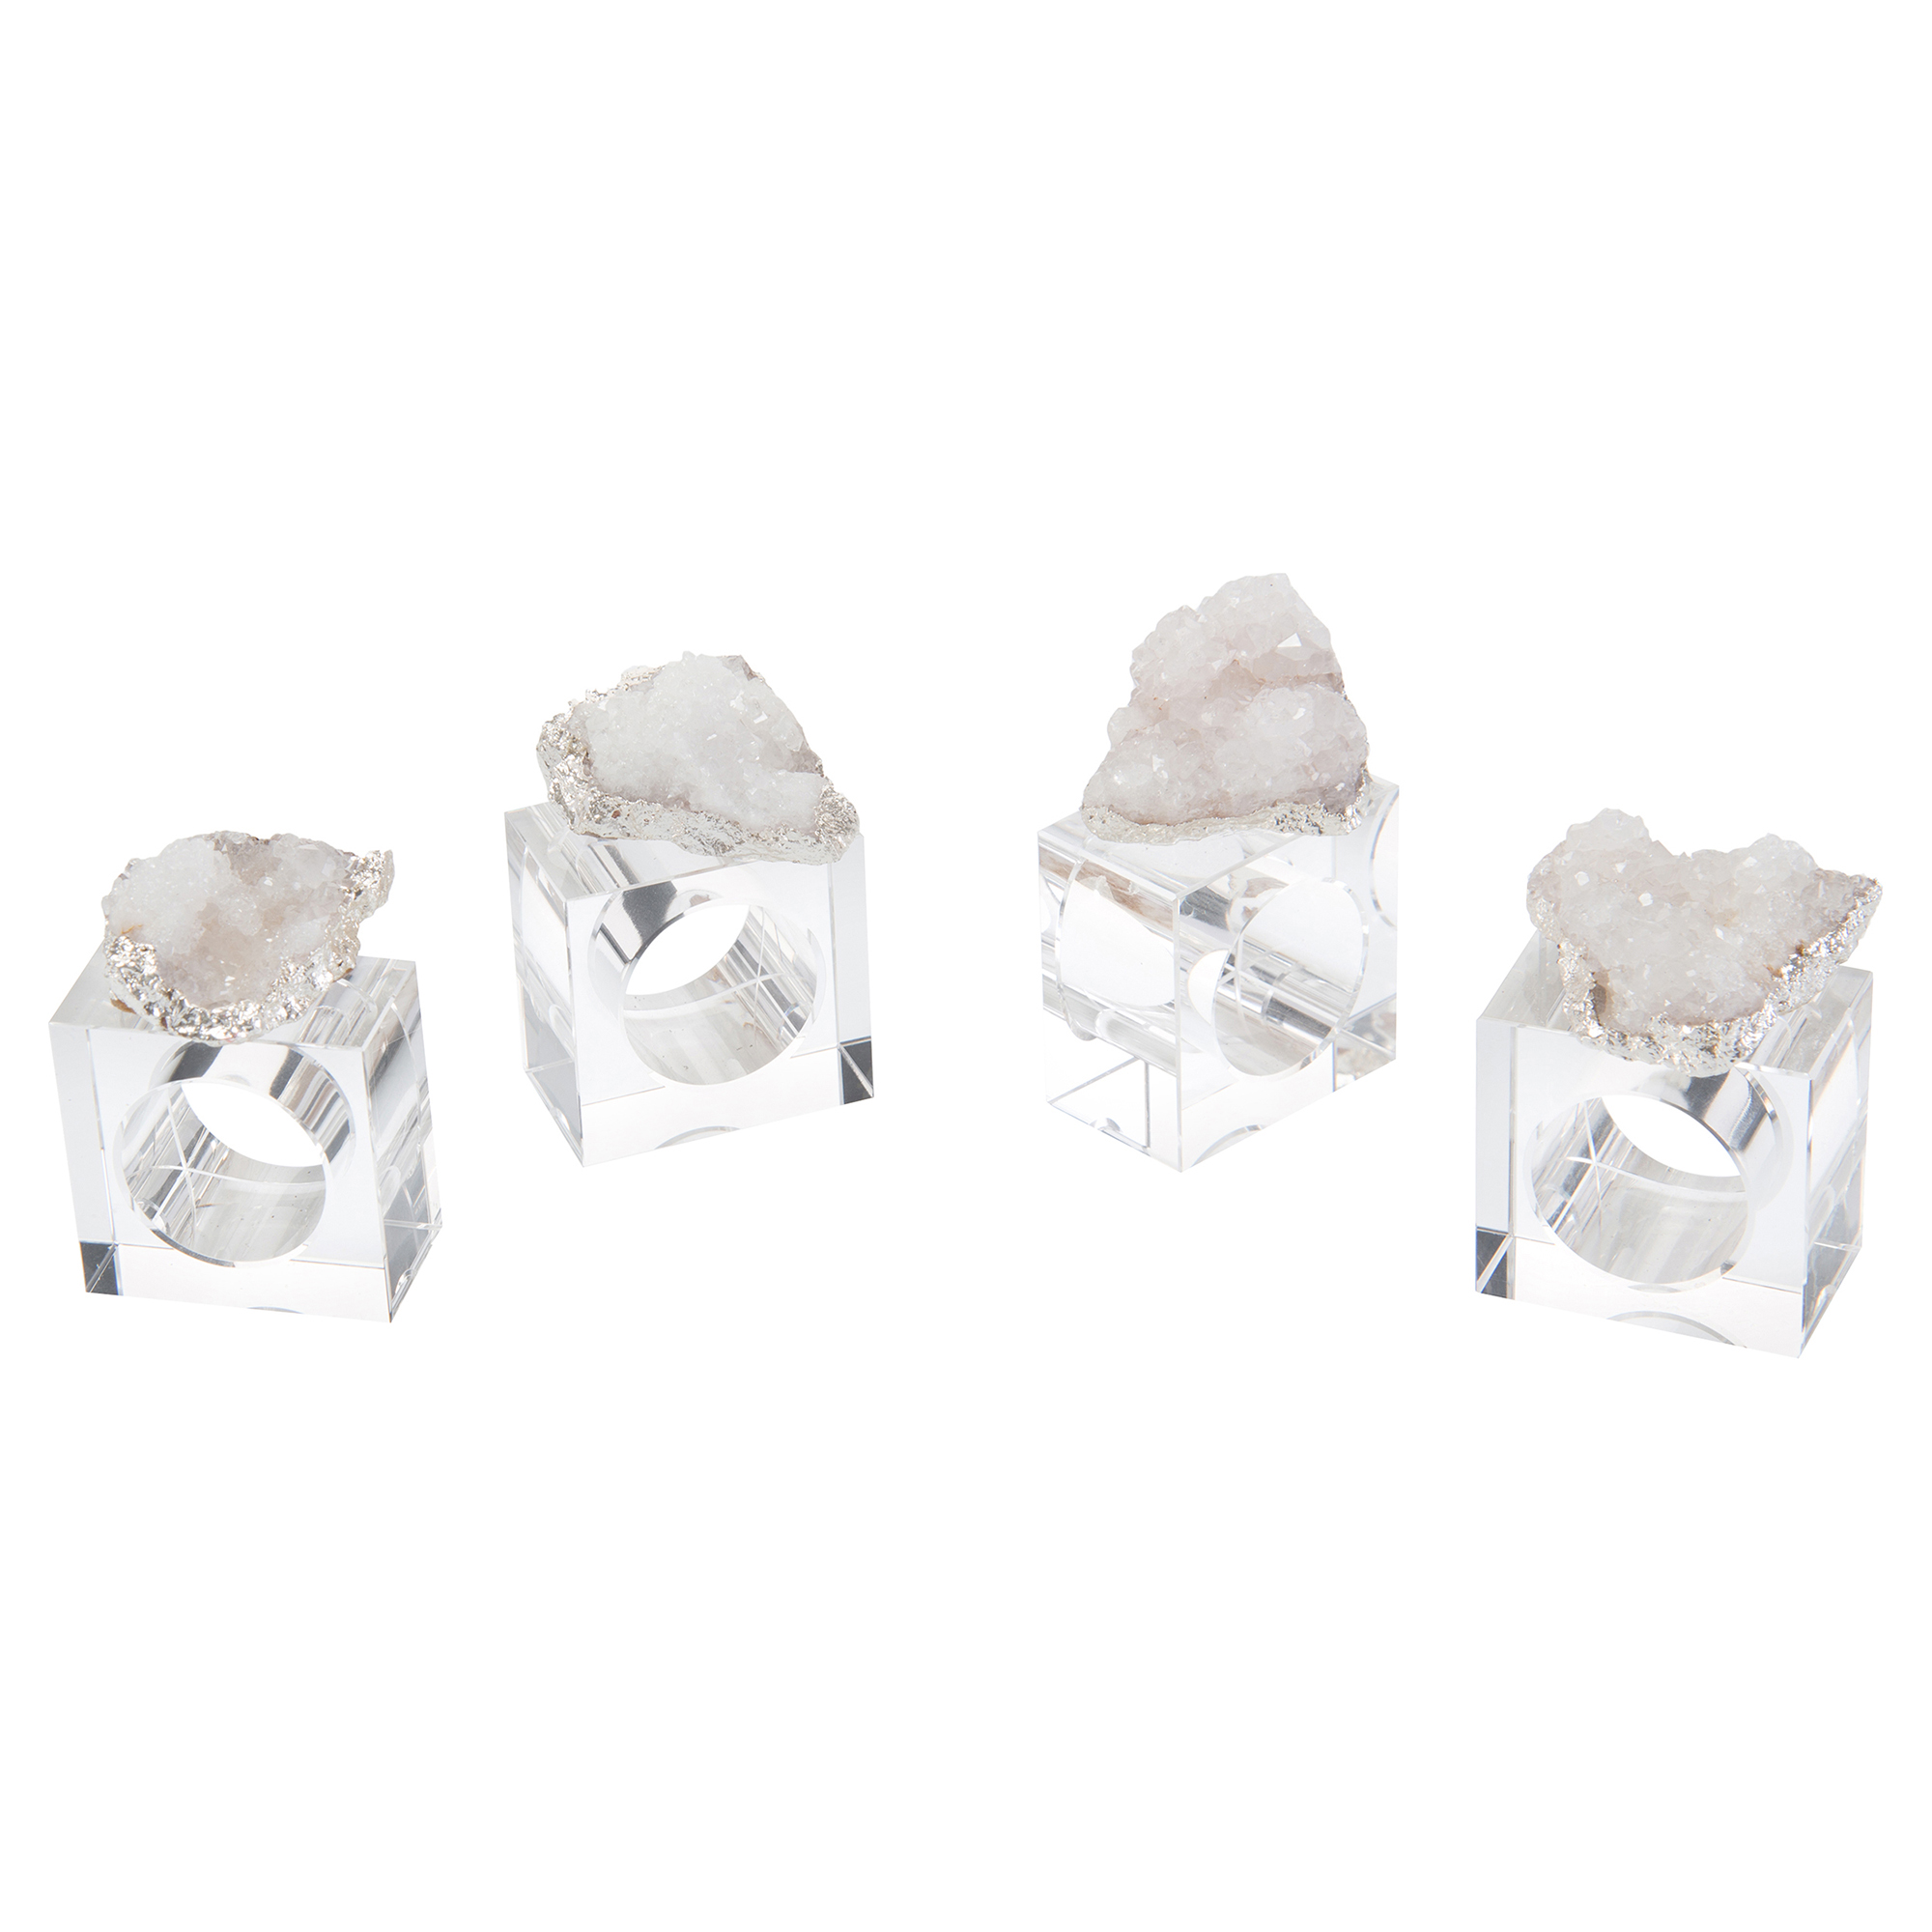 Nickel Plated White Geode Crystal Napkin Rings - Set of 4